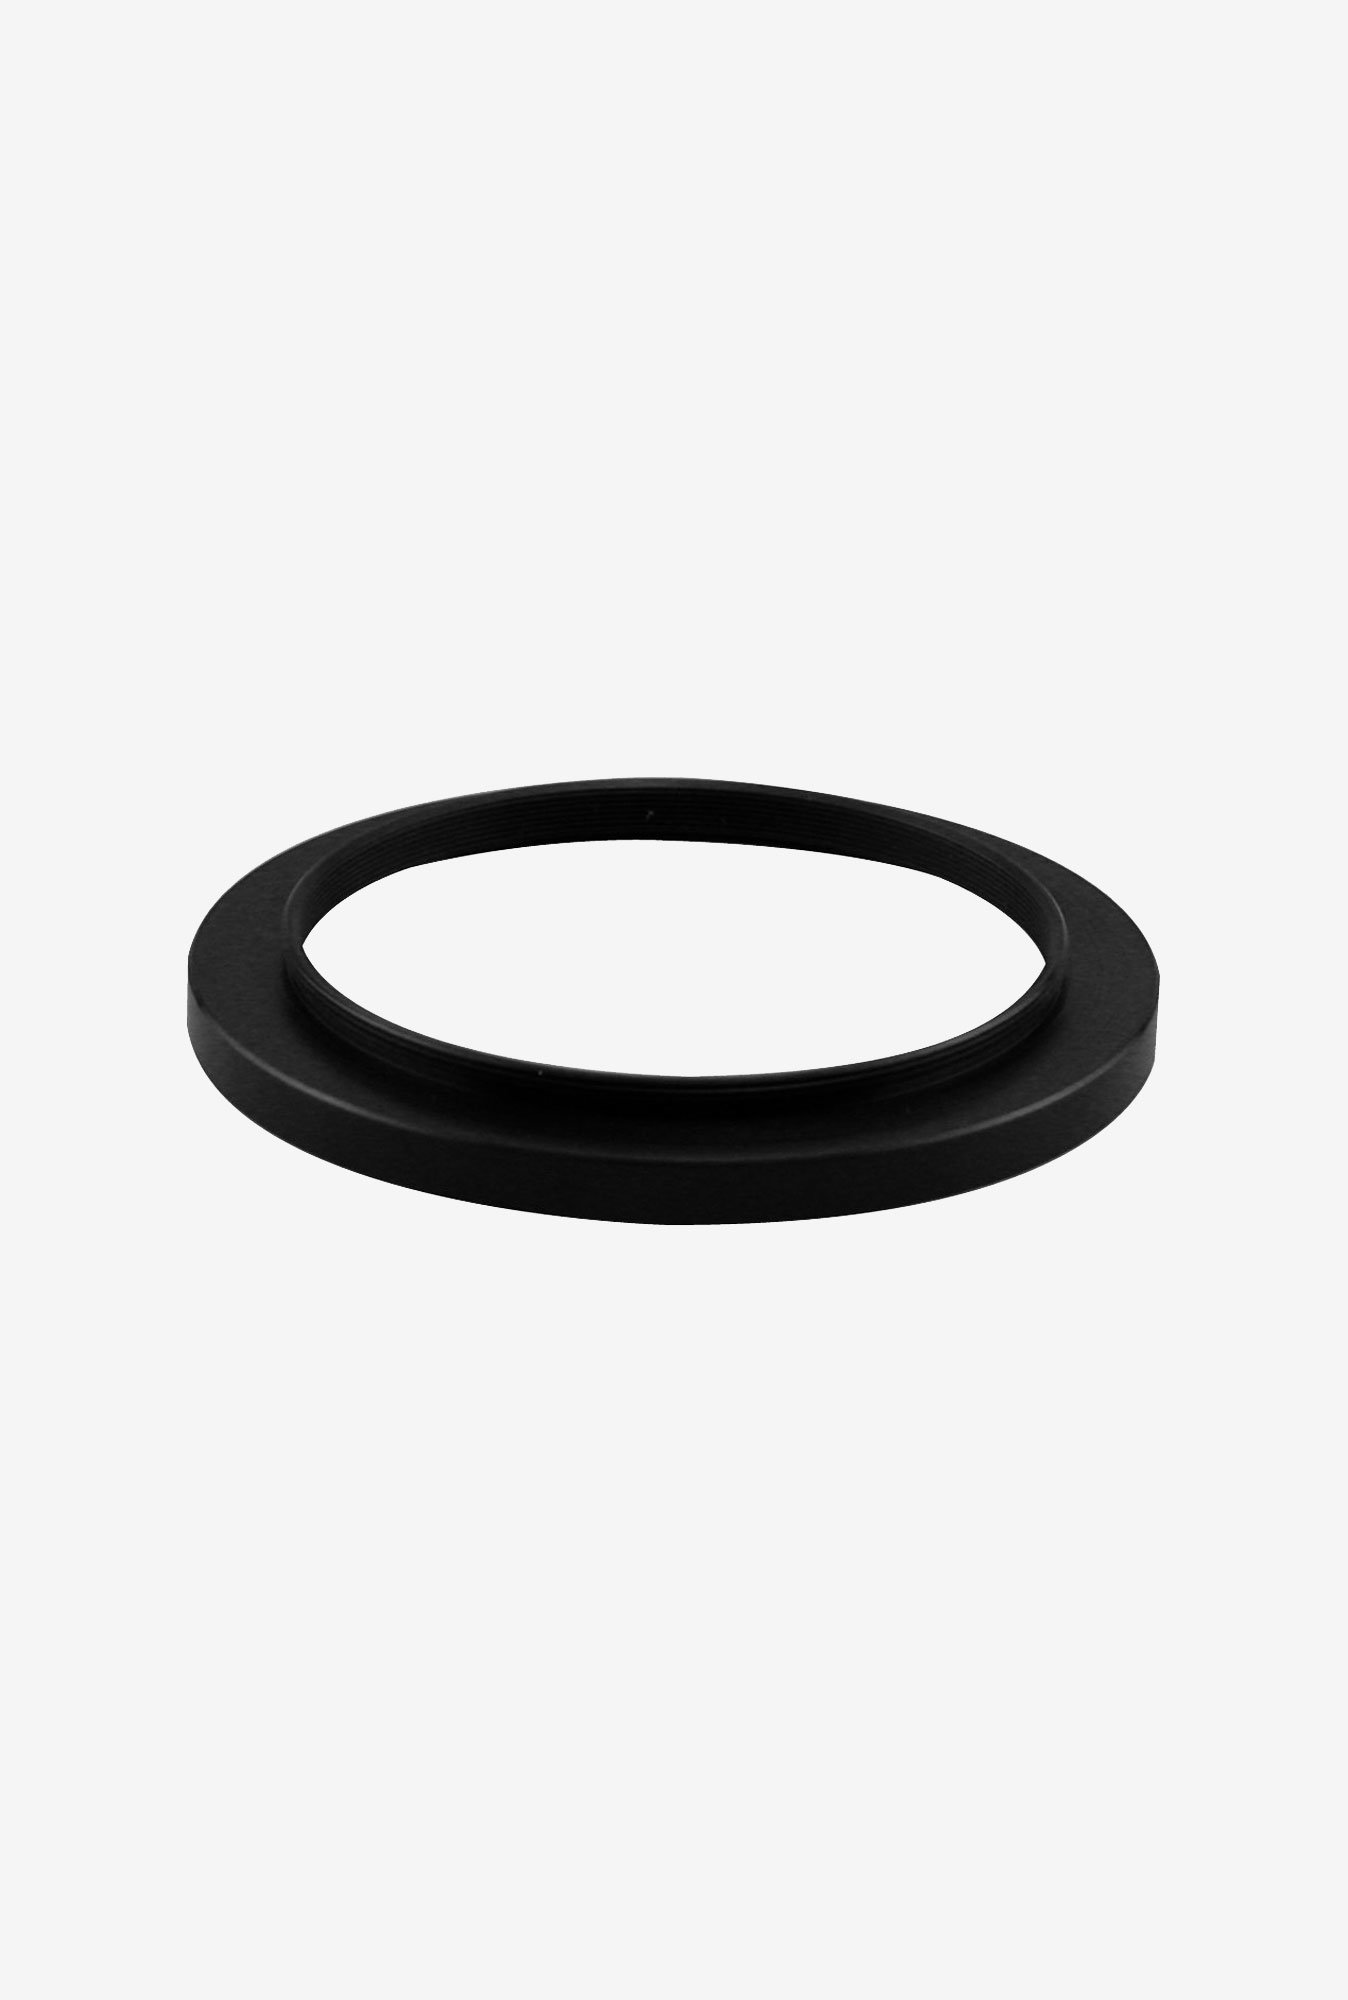 Schneider Optics Century 25-37 mm Step-Up Ring (Black)